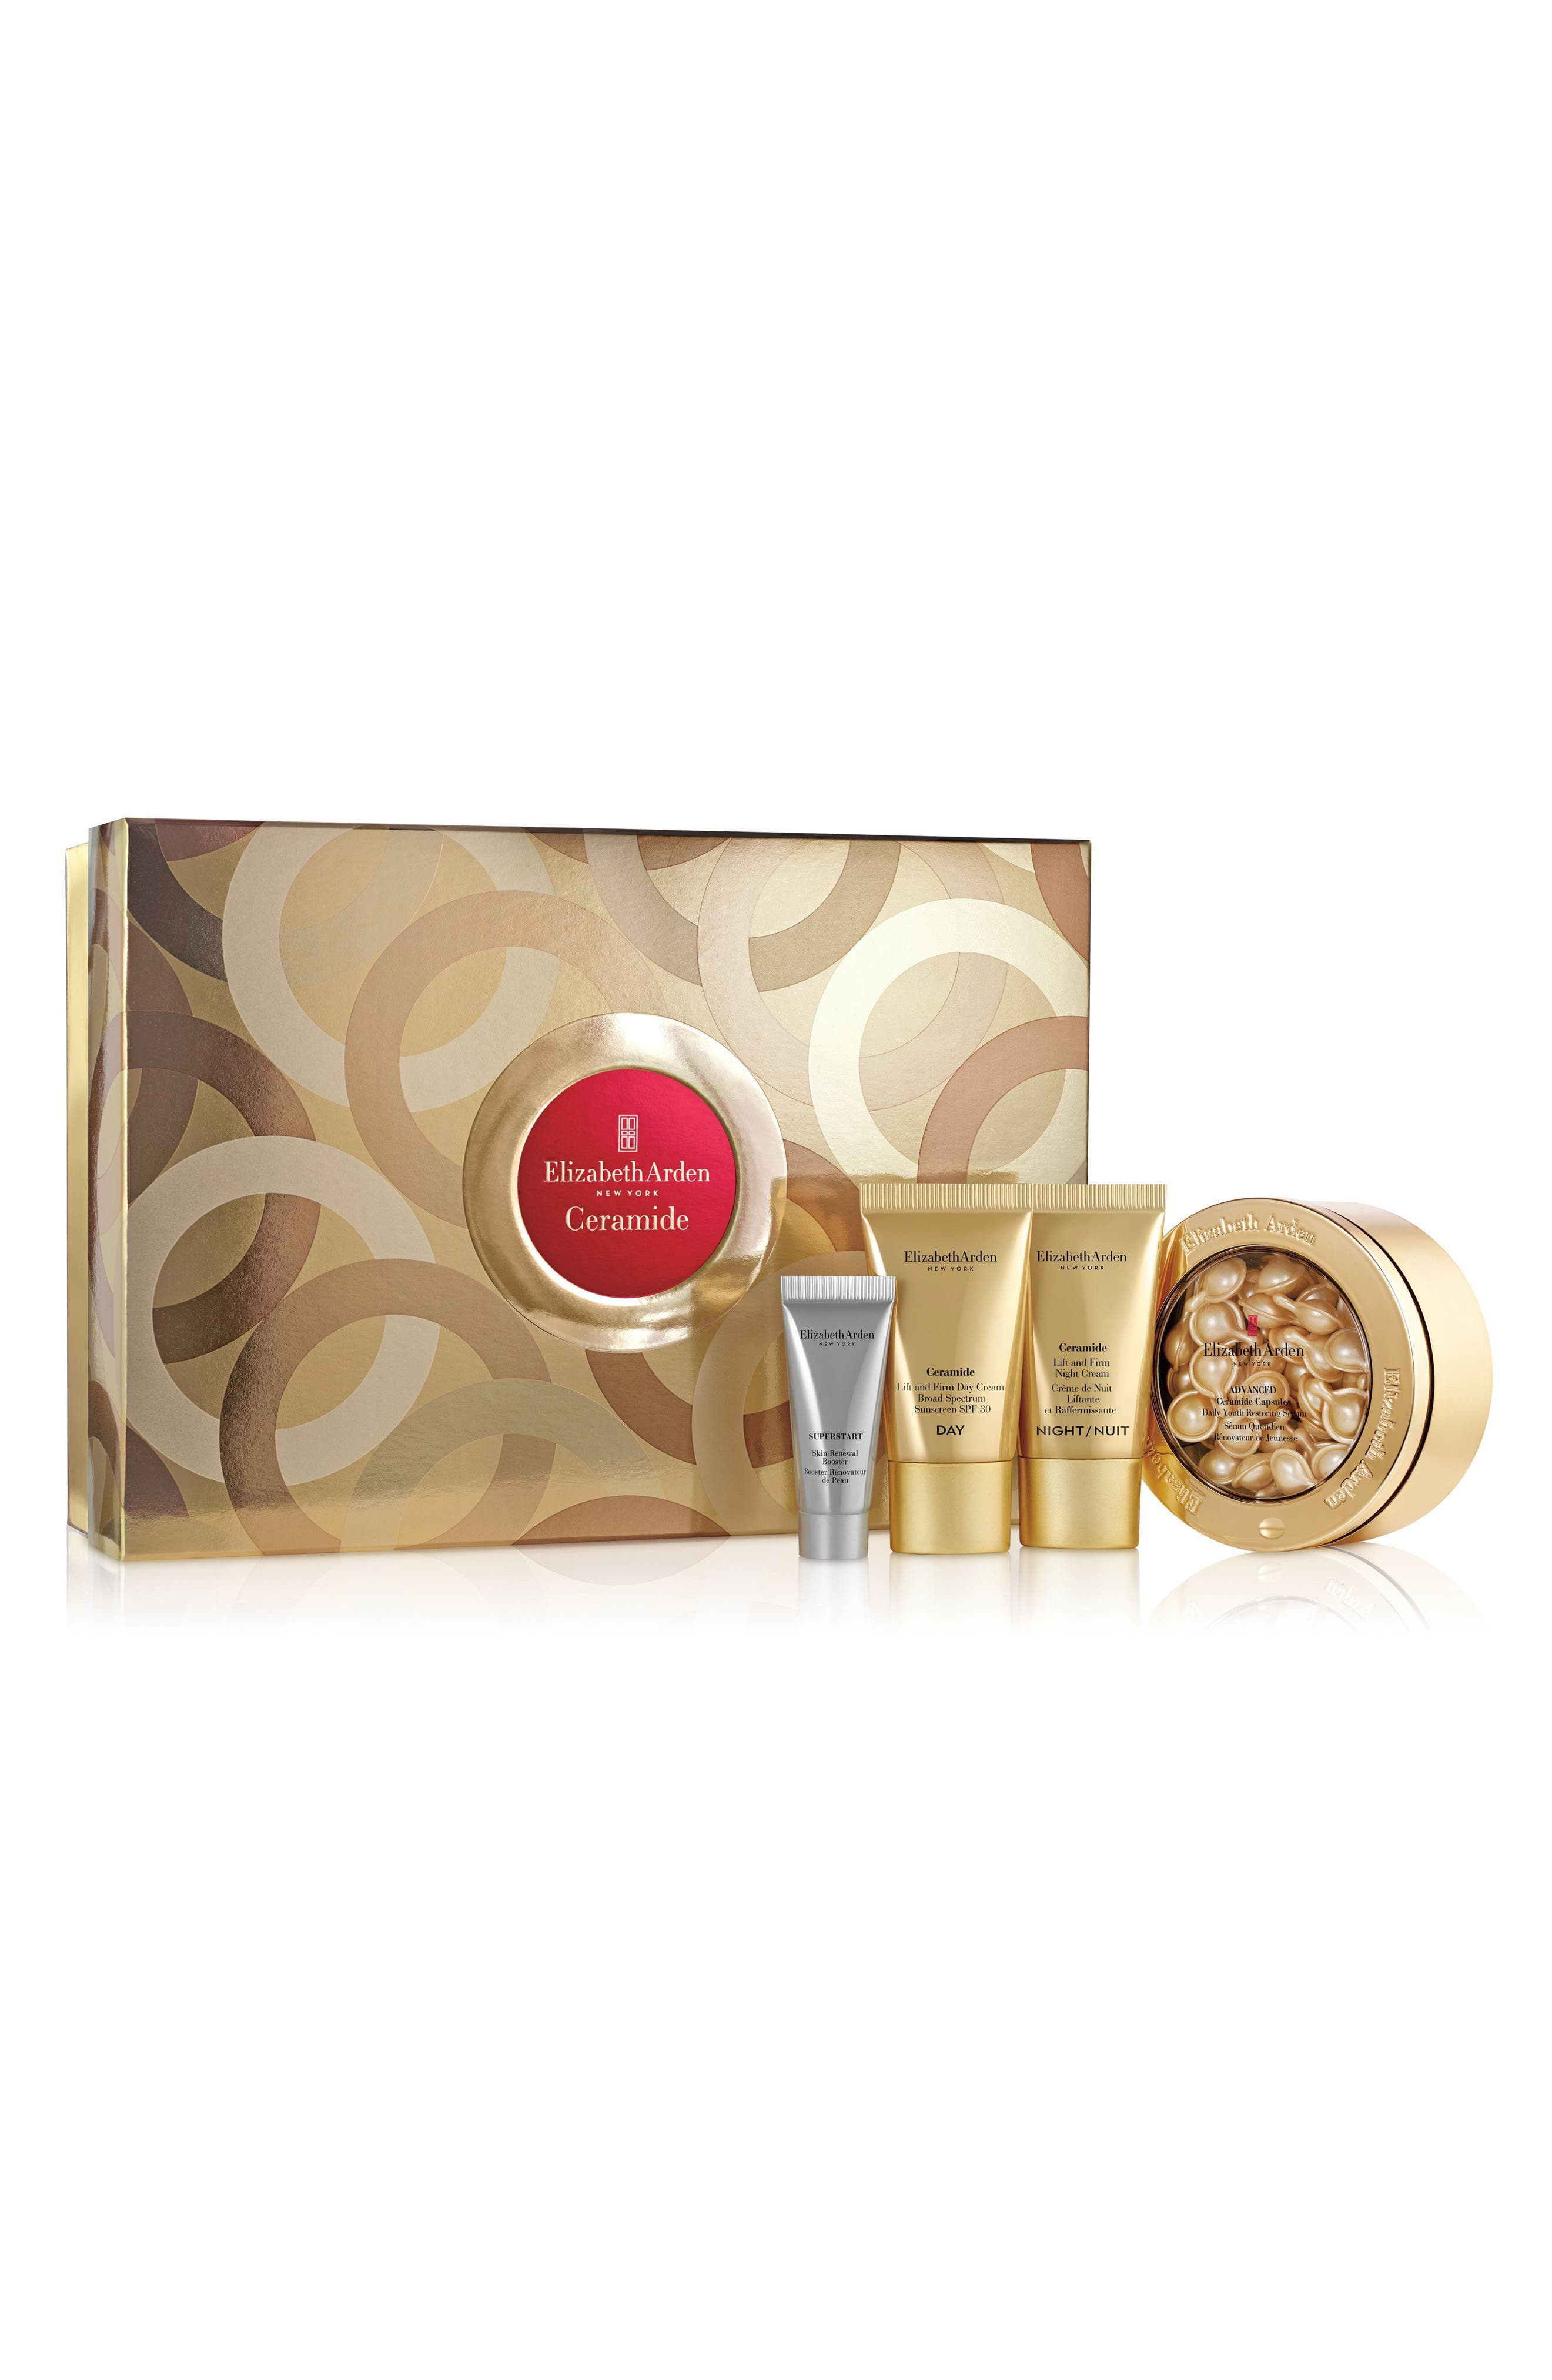 Alternate Image 1 Selected - Elizabeth Arden Ceramide Lift & Firm Set ($134 Value)